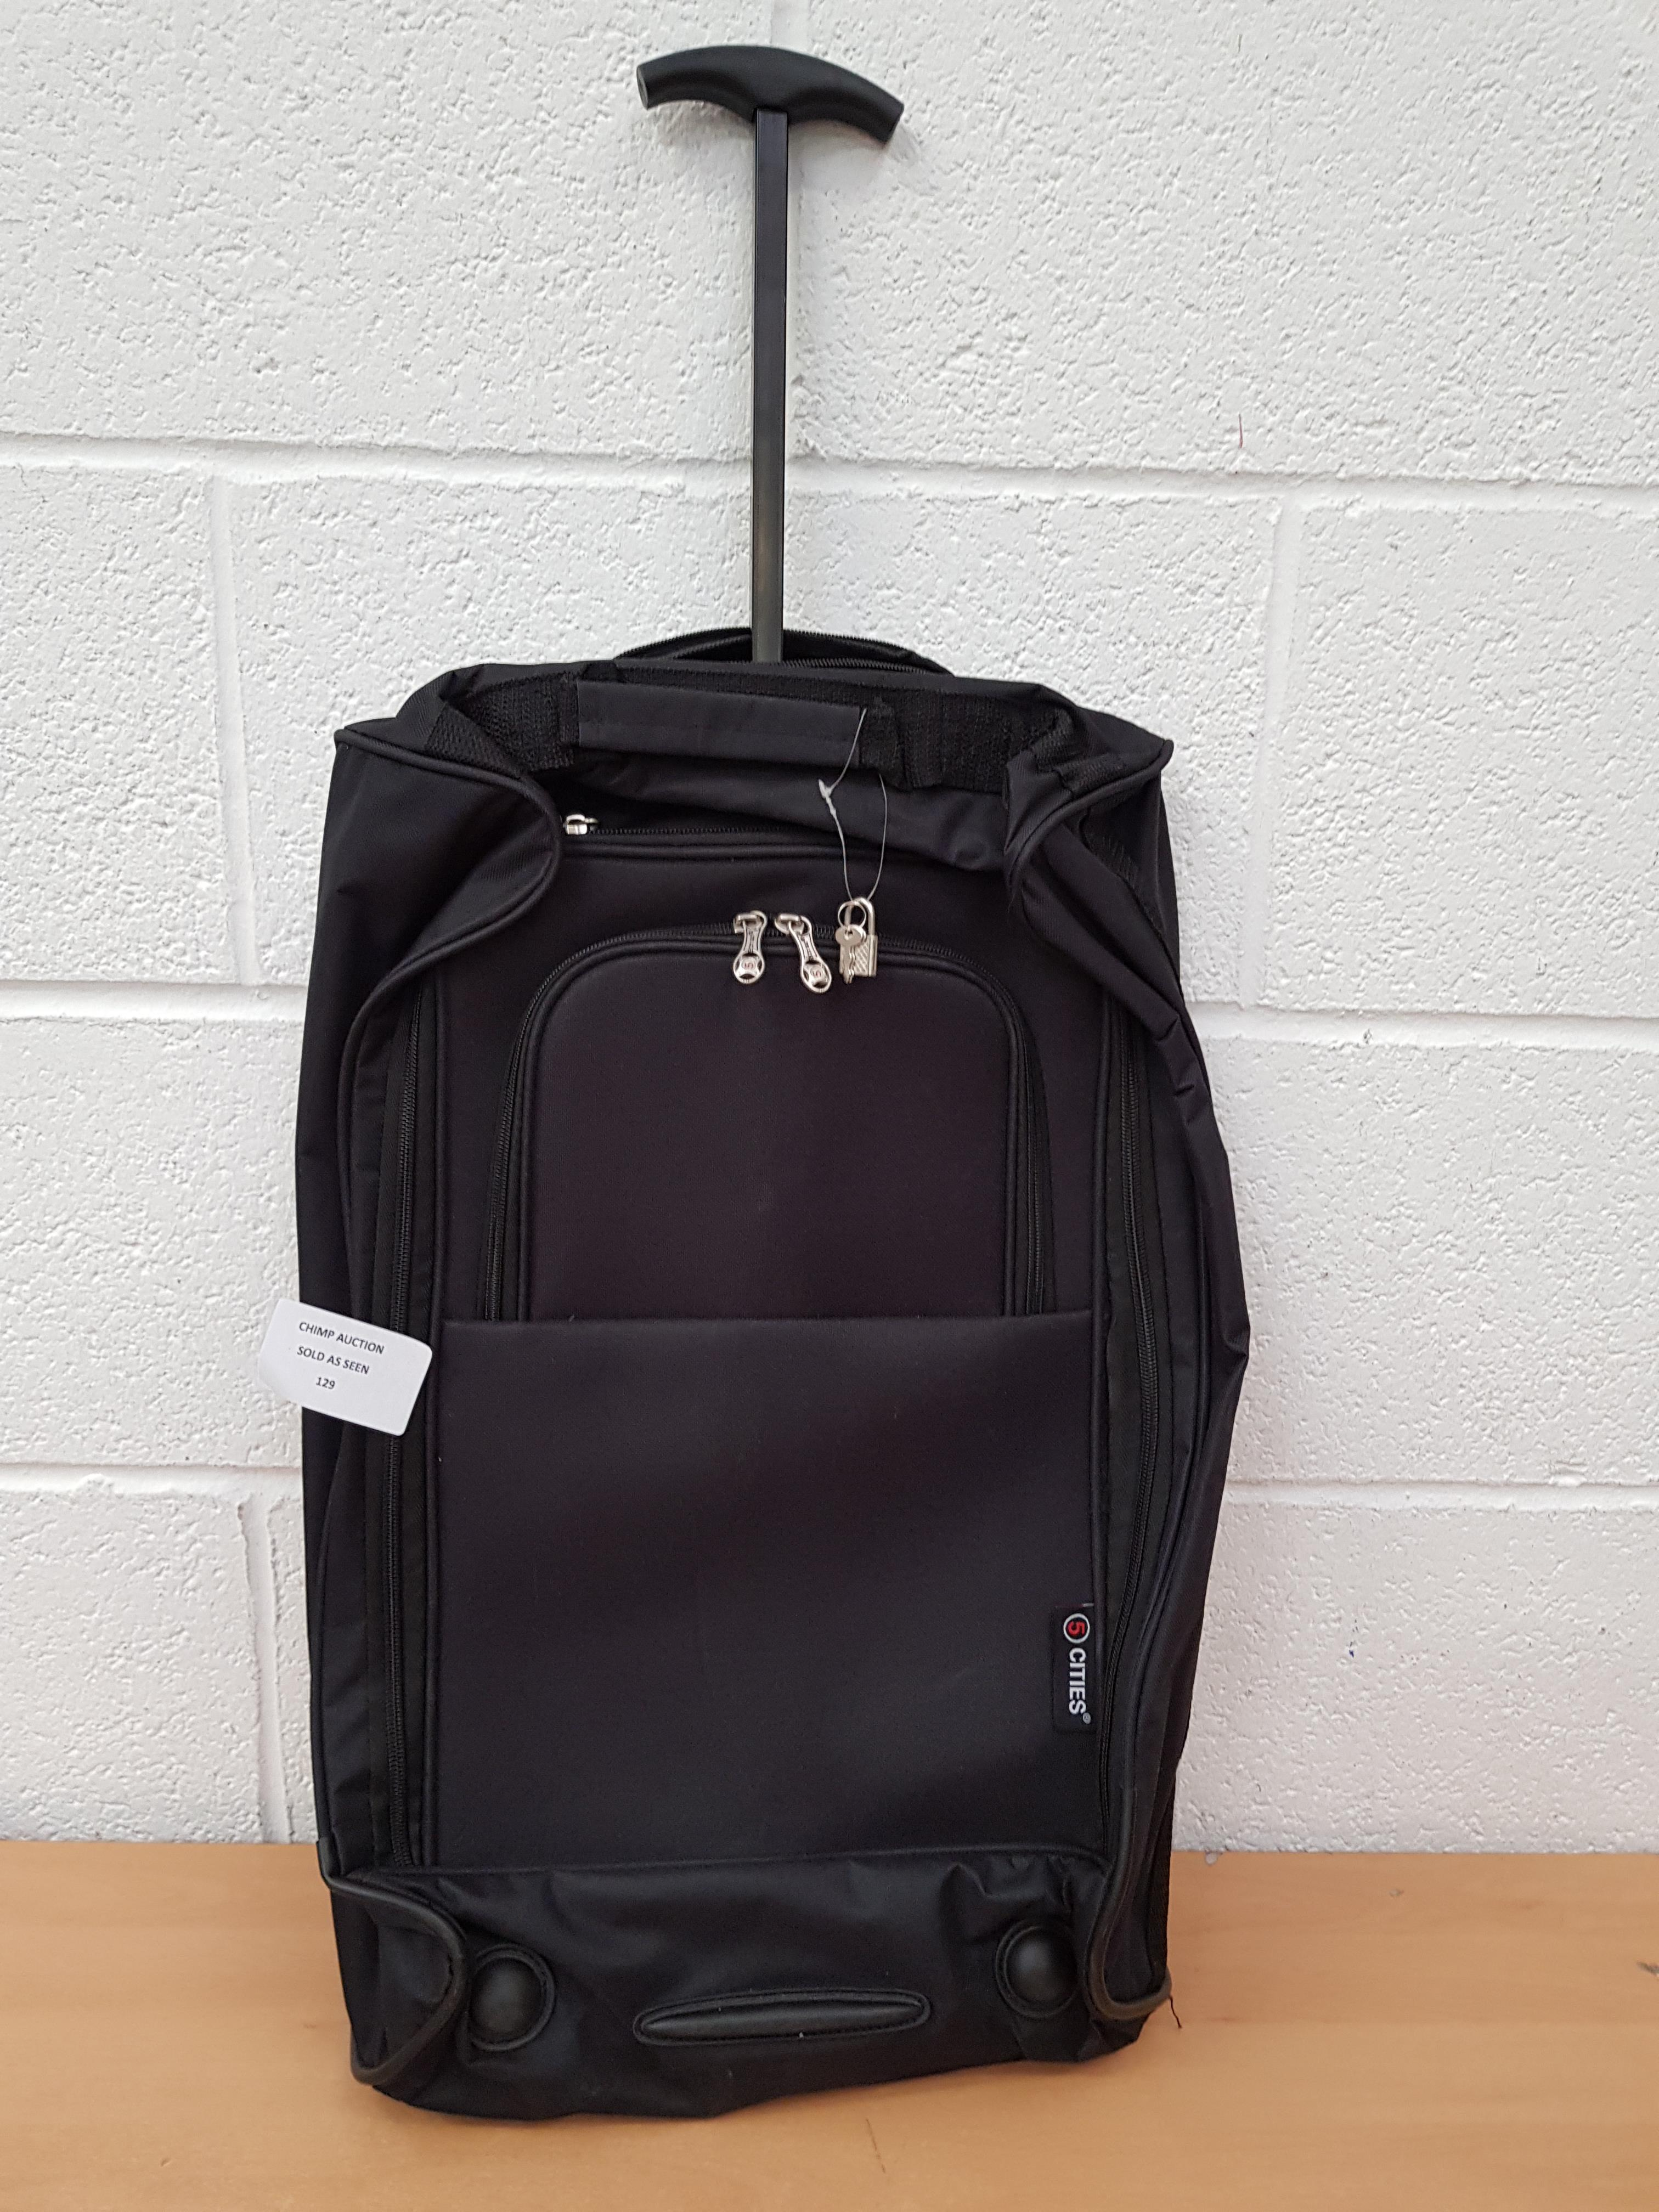 Lotto 129 - Cities 5 Travel Baggage